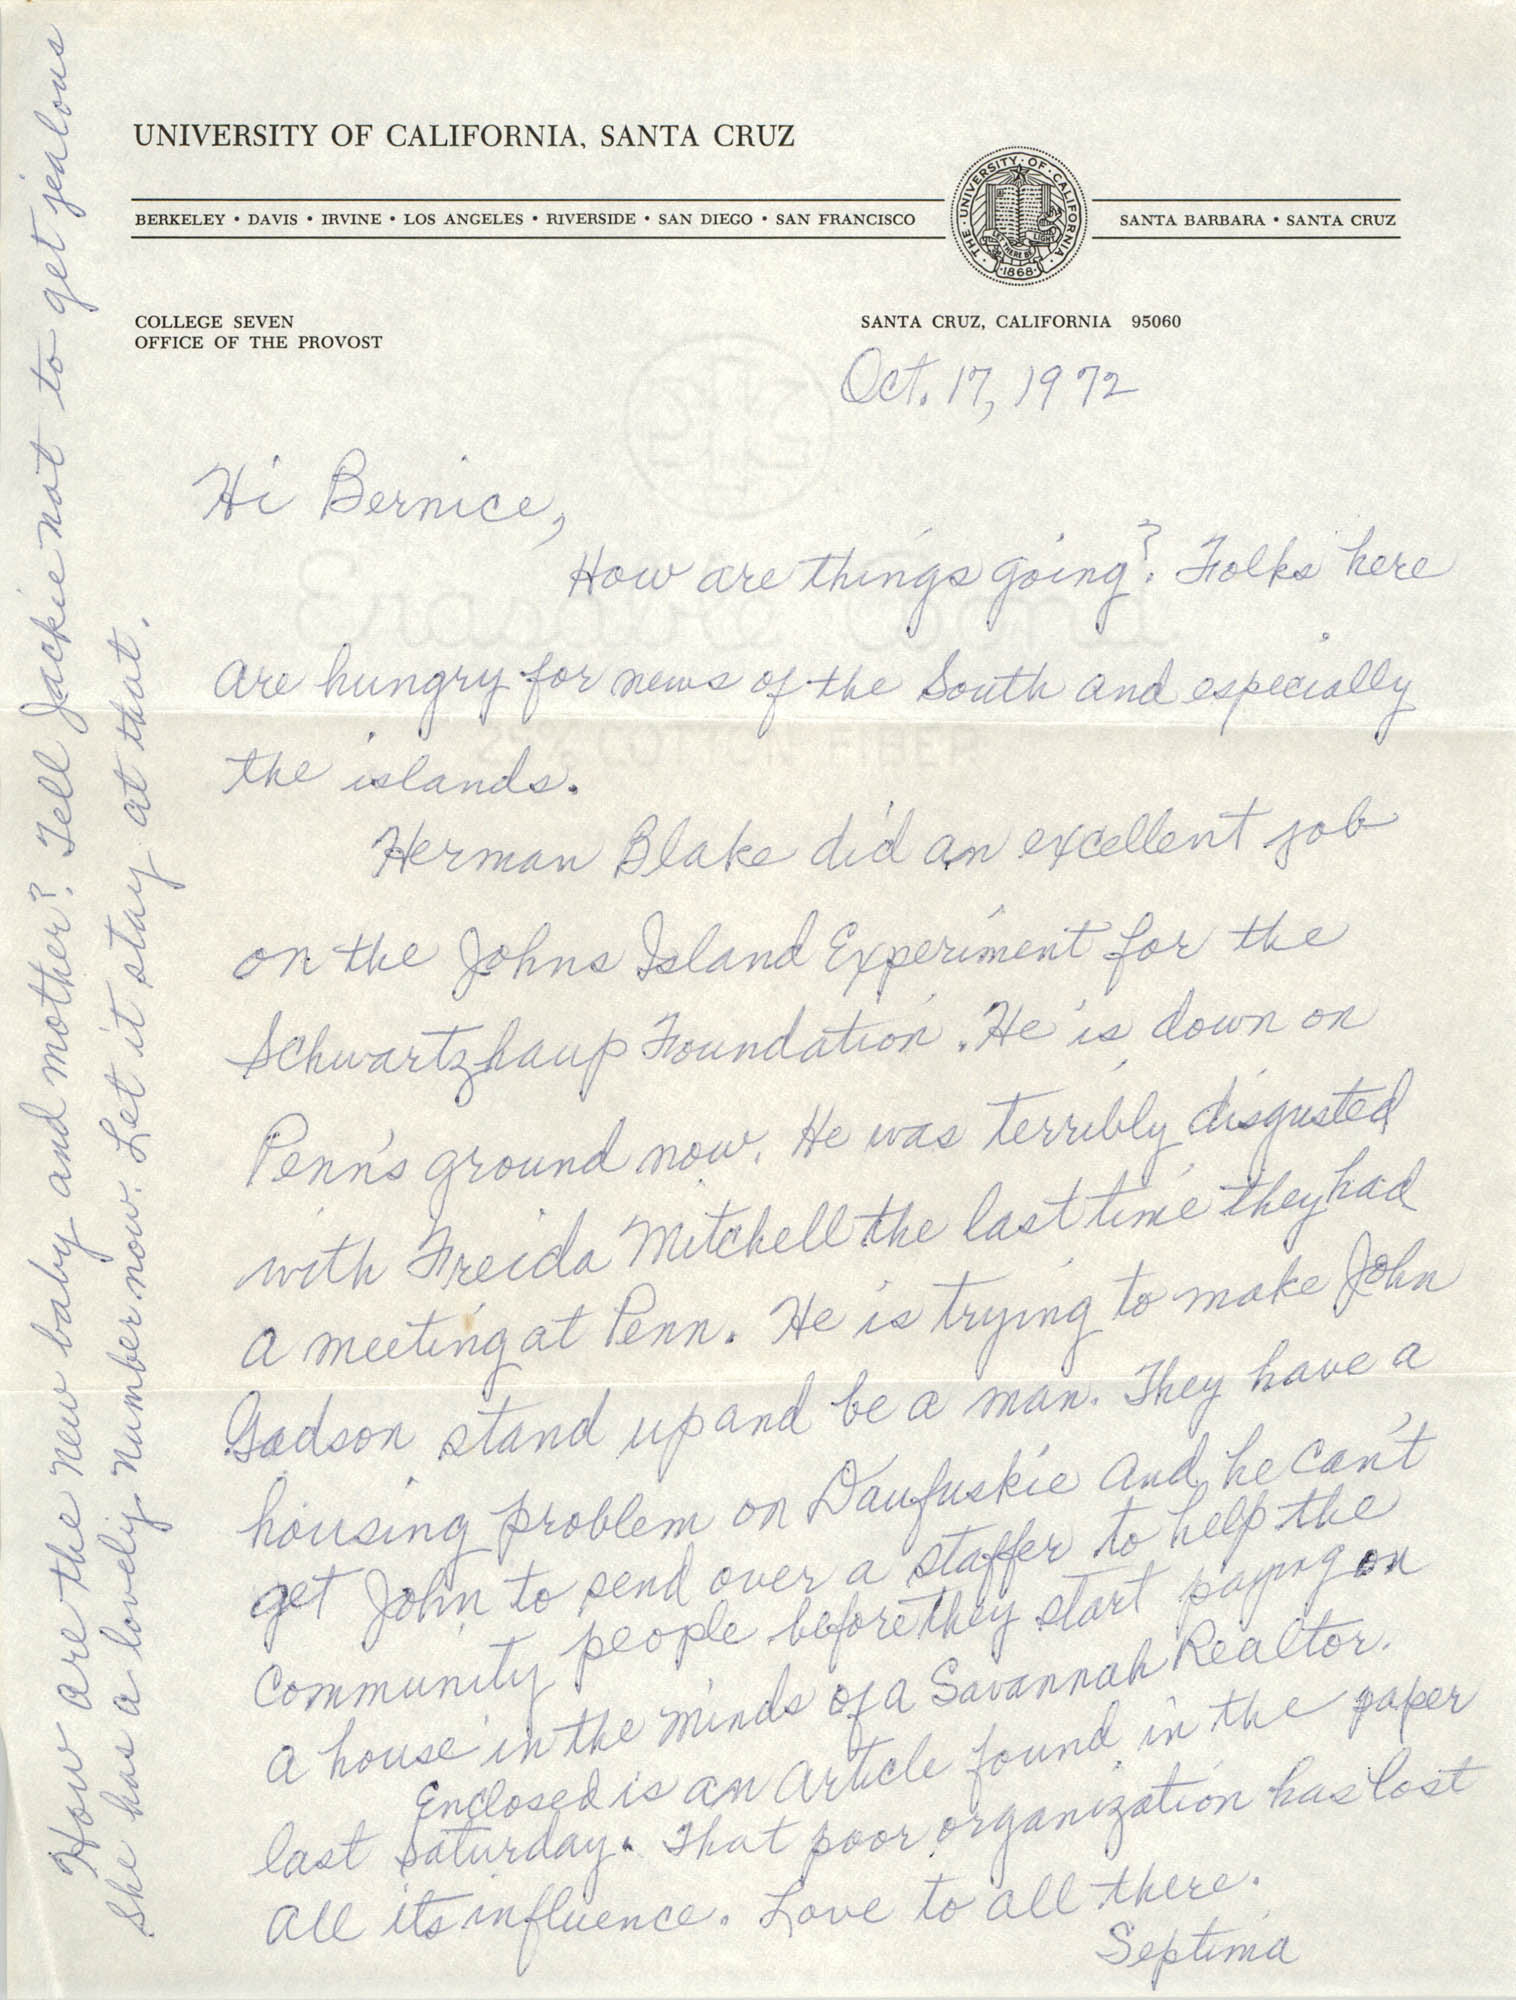 Letter from Septima P. Clark to Bernice Robinson, October 17, 1972